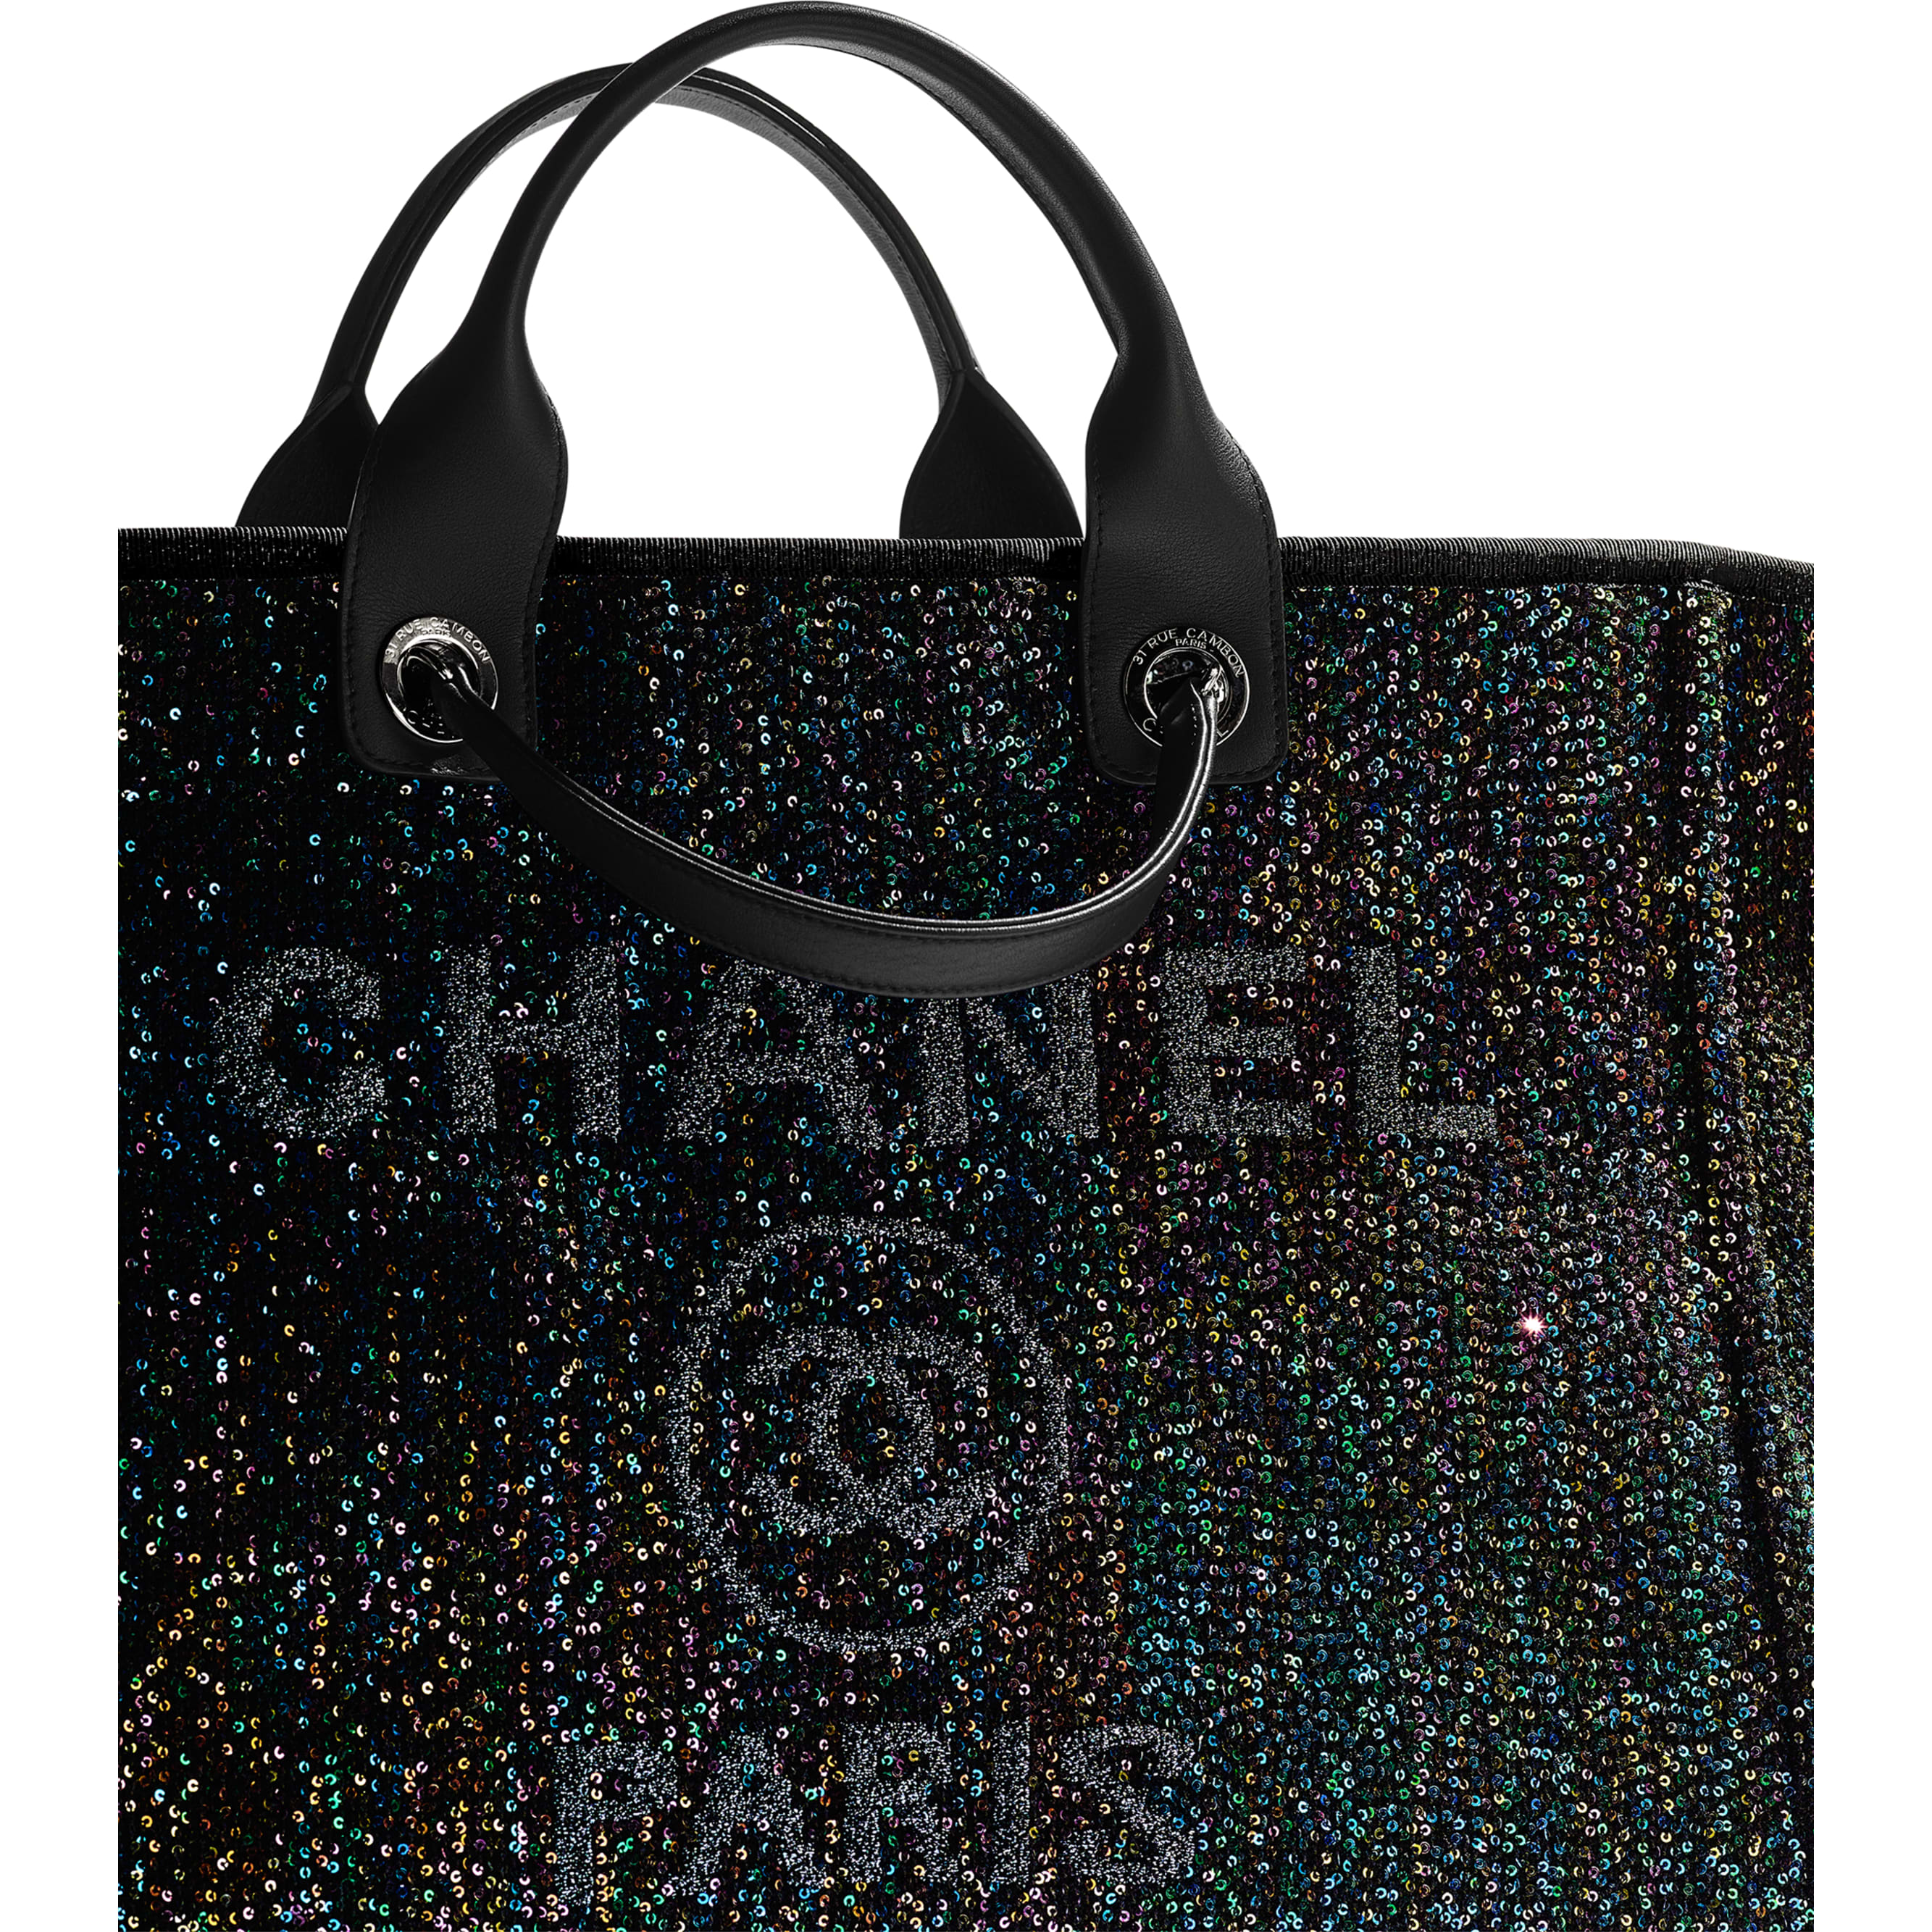 Large Tote - Black - Viscose, Calfskin, Sequins & Silver-Tone Metal - CHANEL - Extra view - see standard sized version